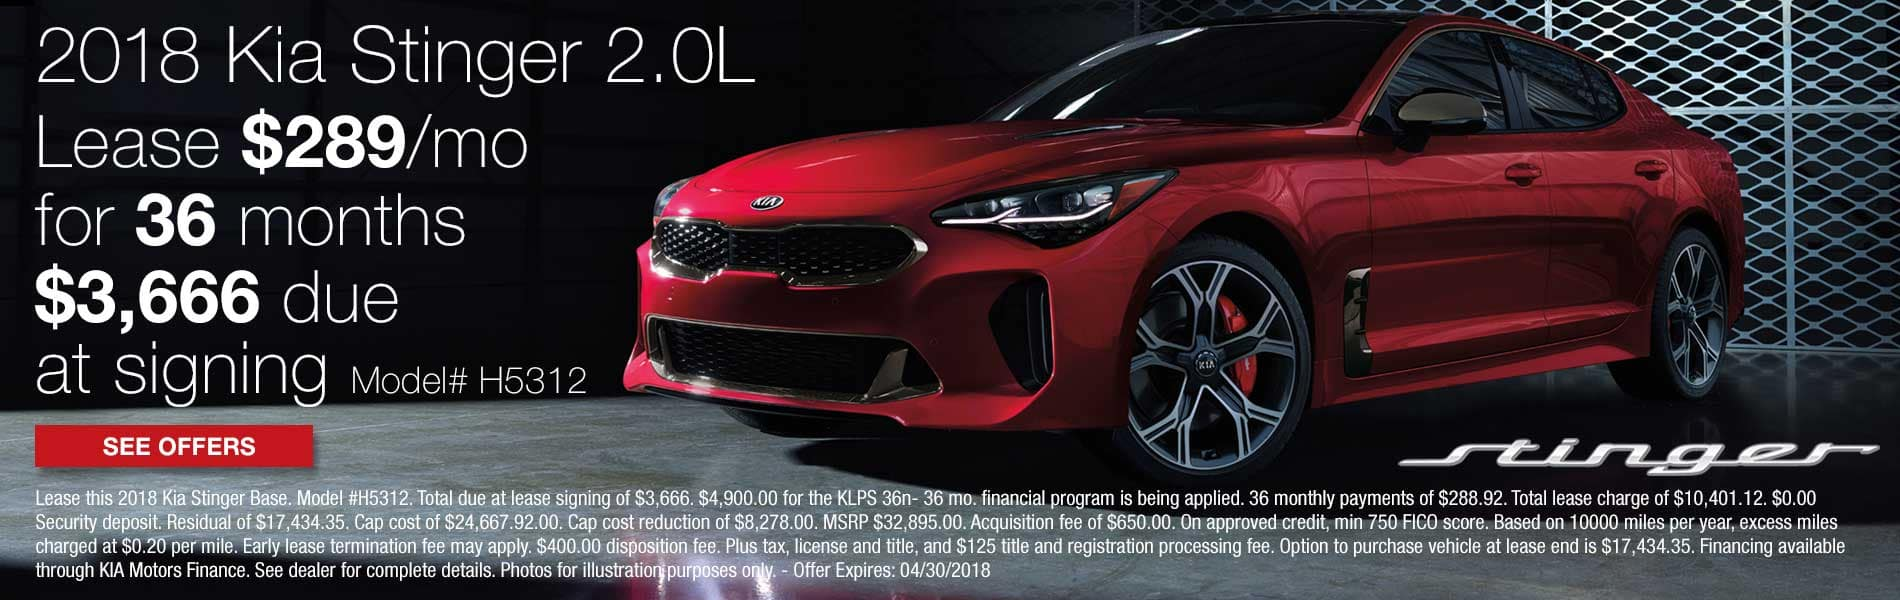 Lease a new 2018 Kia Stinger Base for $289 per month with $3,666 due at signing